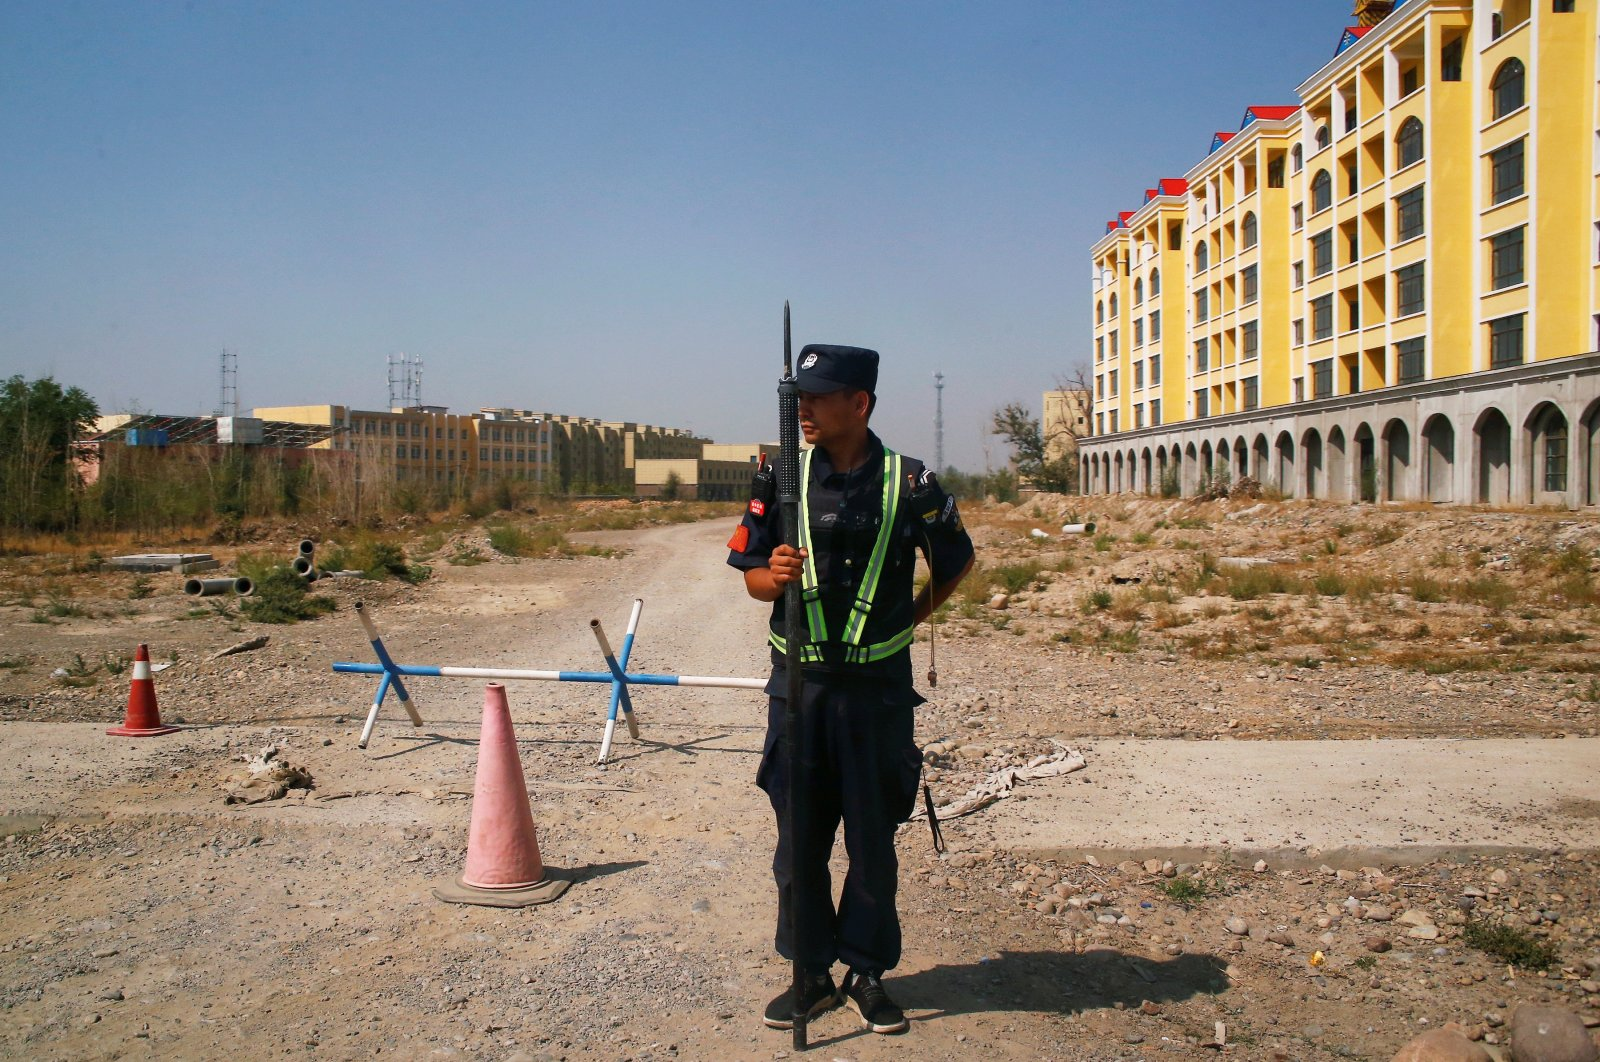 A Chinese police officer takes his position by the road near what is officially called a vocational education center in Yining in the Xinjiang Uighur Autonomous Region, China, Sept. 4, 2018. (Reuters Photo)